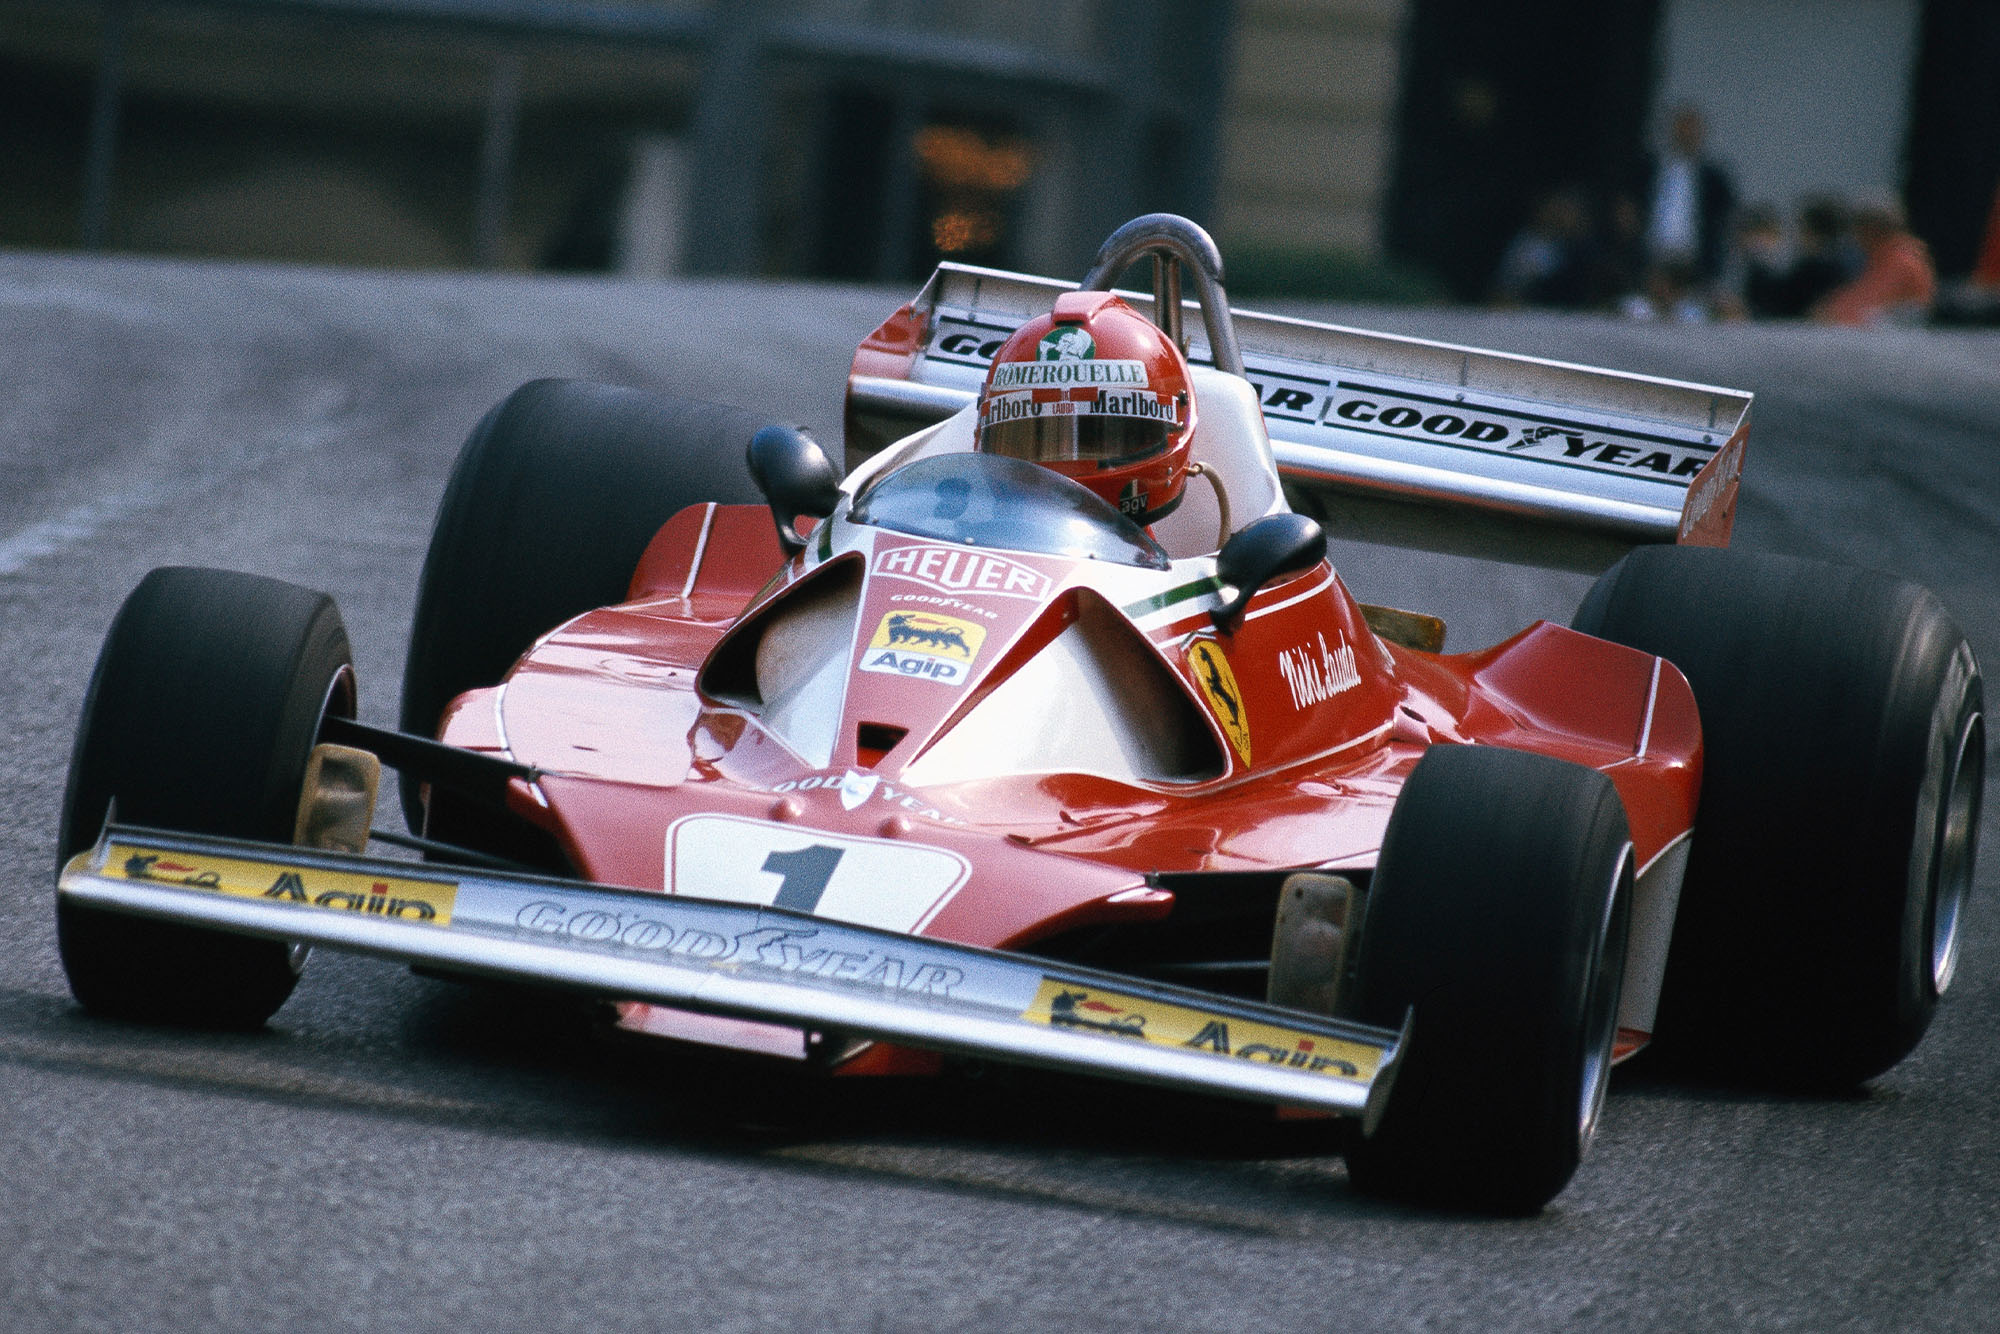 Niki Lauda (Ferrari) at the 1976 Monaco Grand Prix.